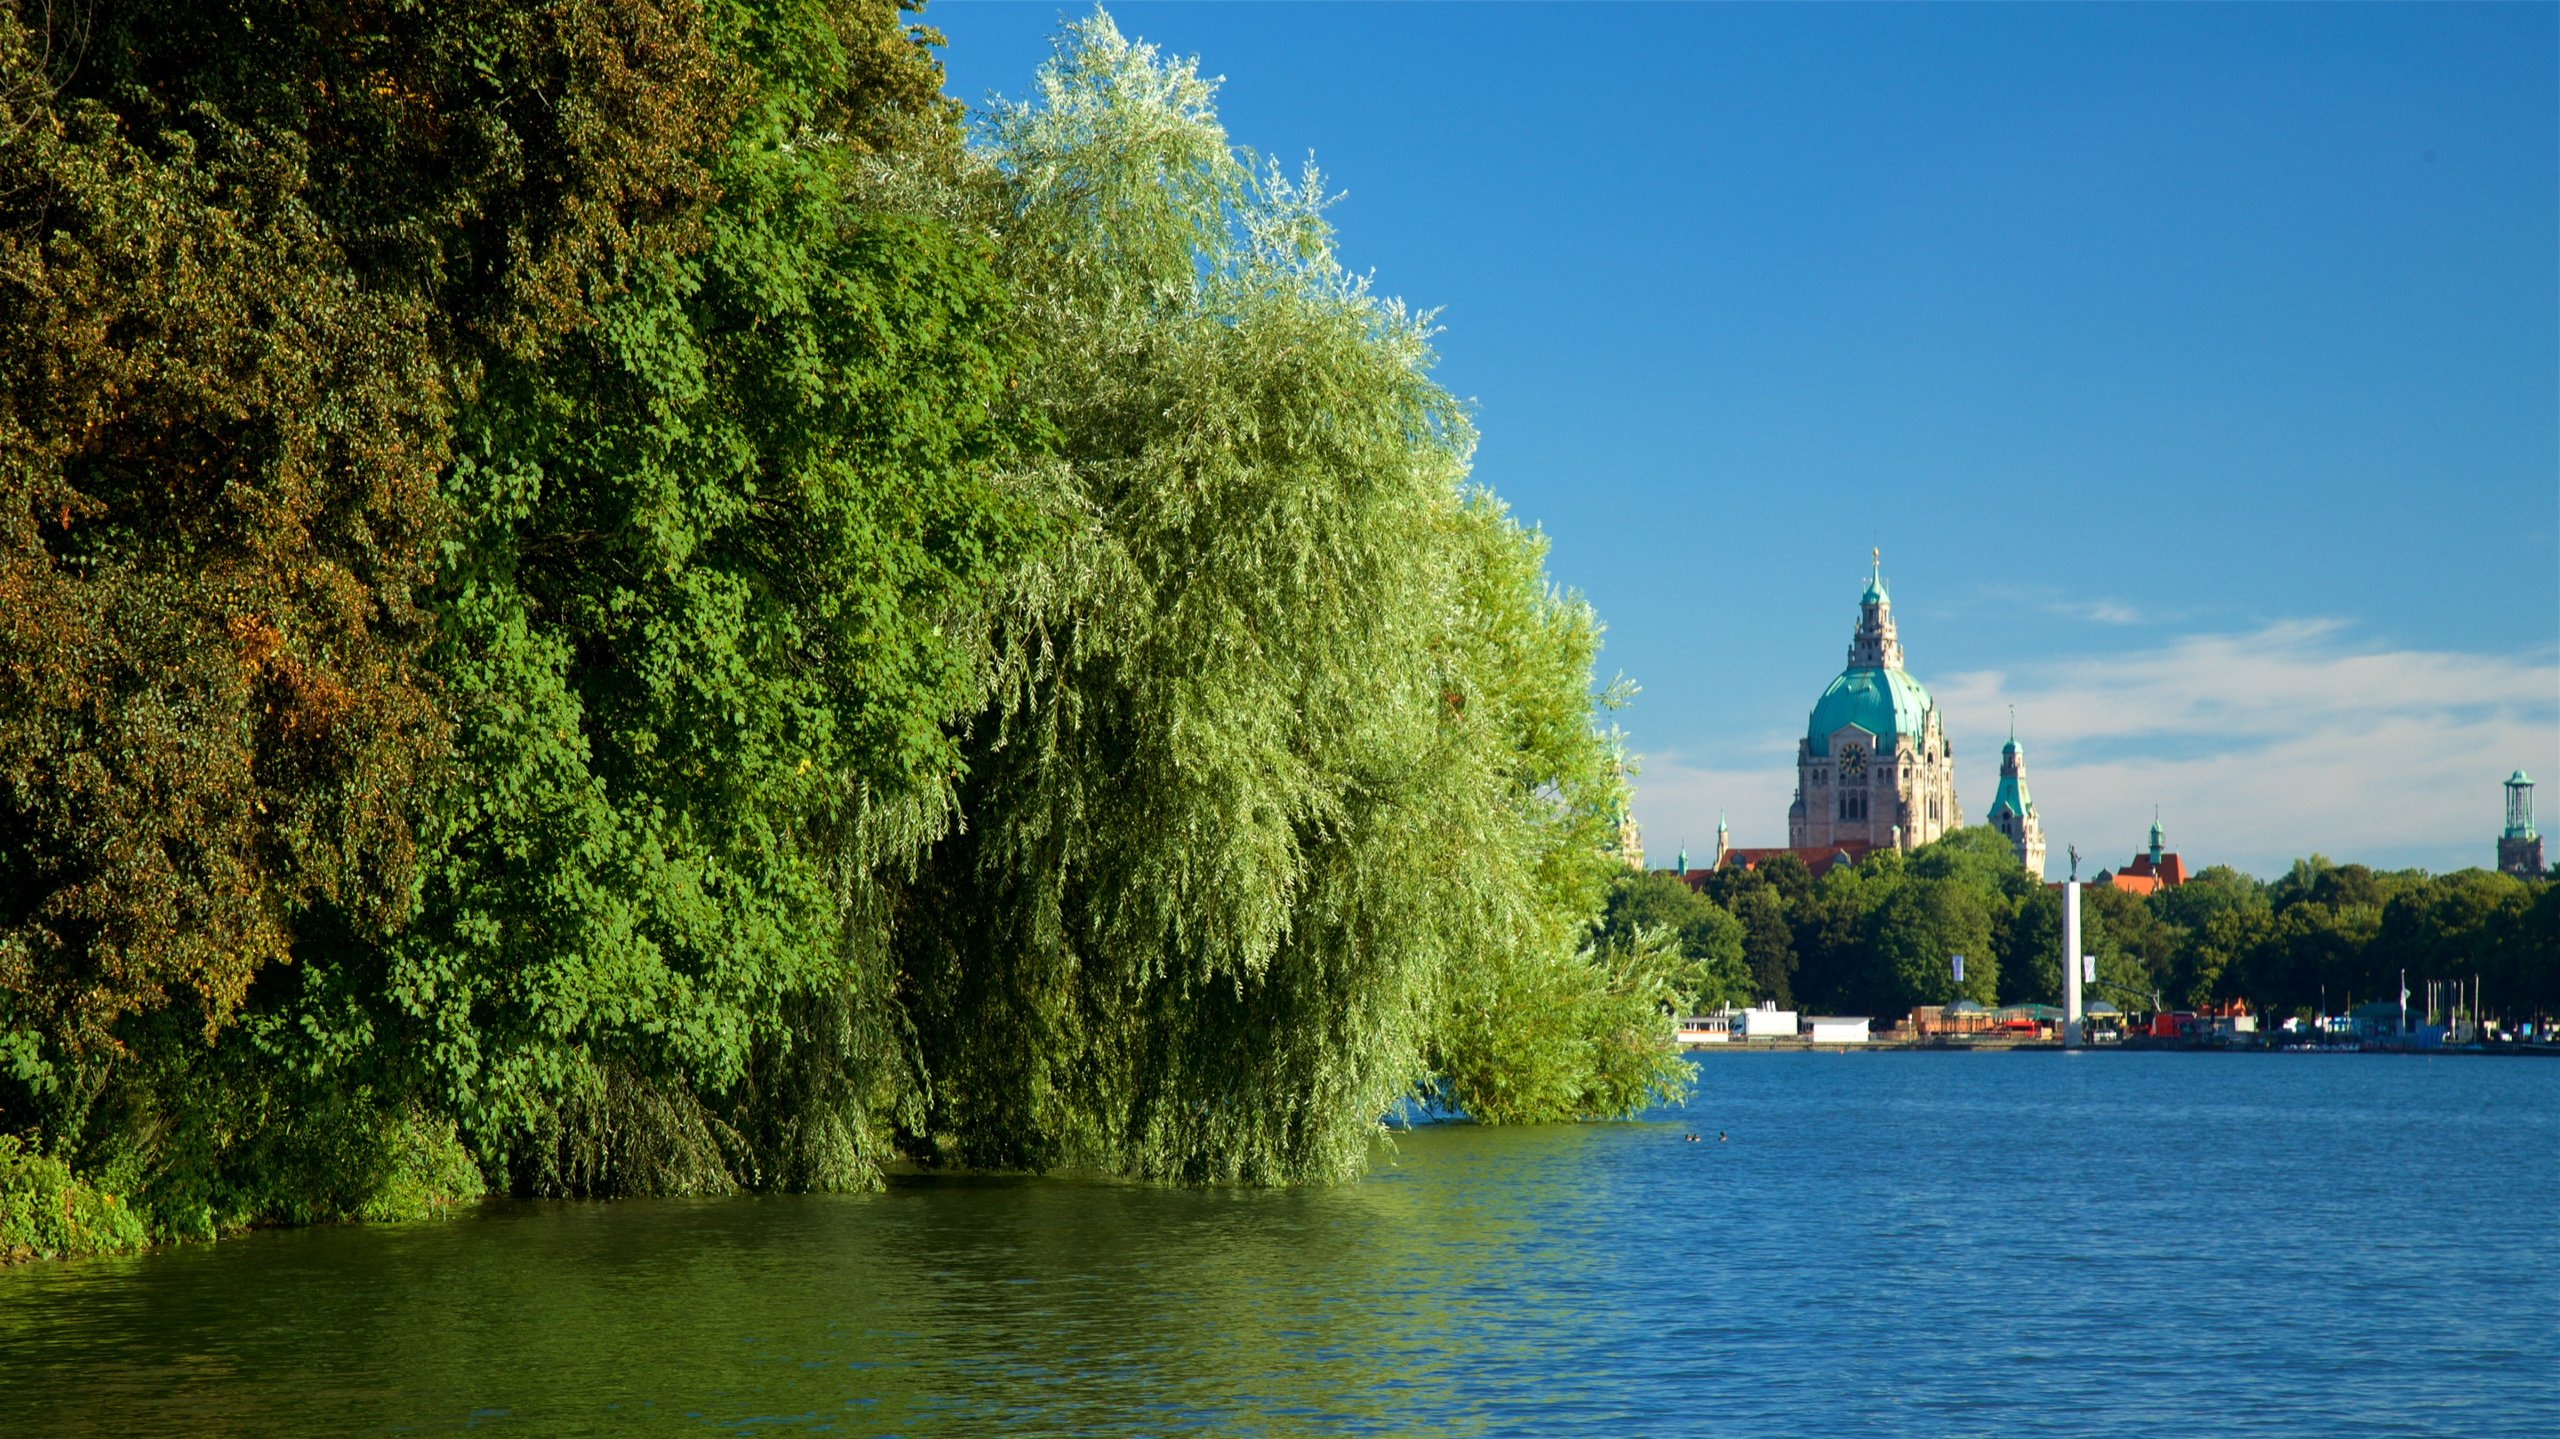 Maschsee, Hannover, Lower Saxony, Germany